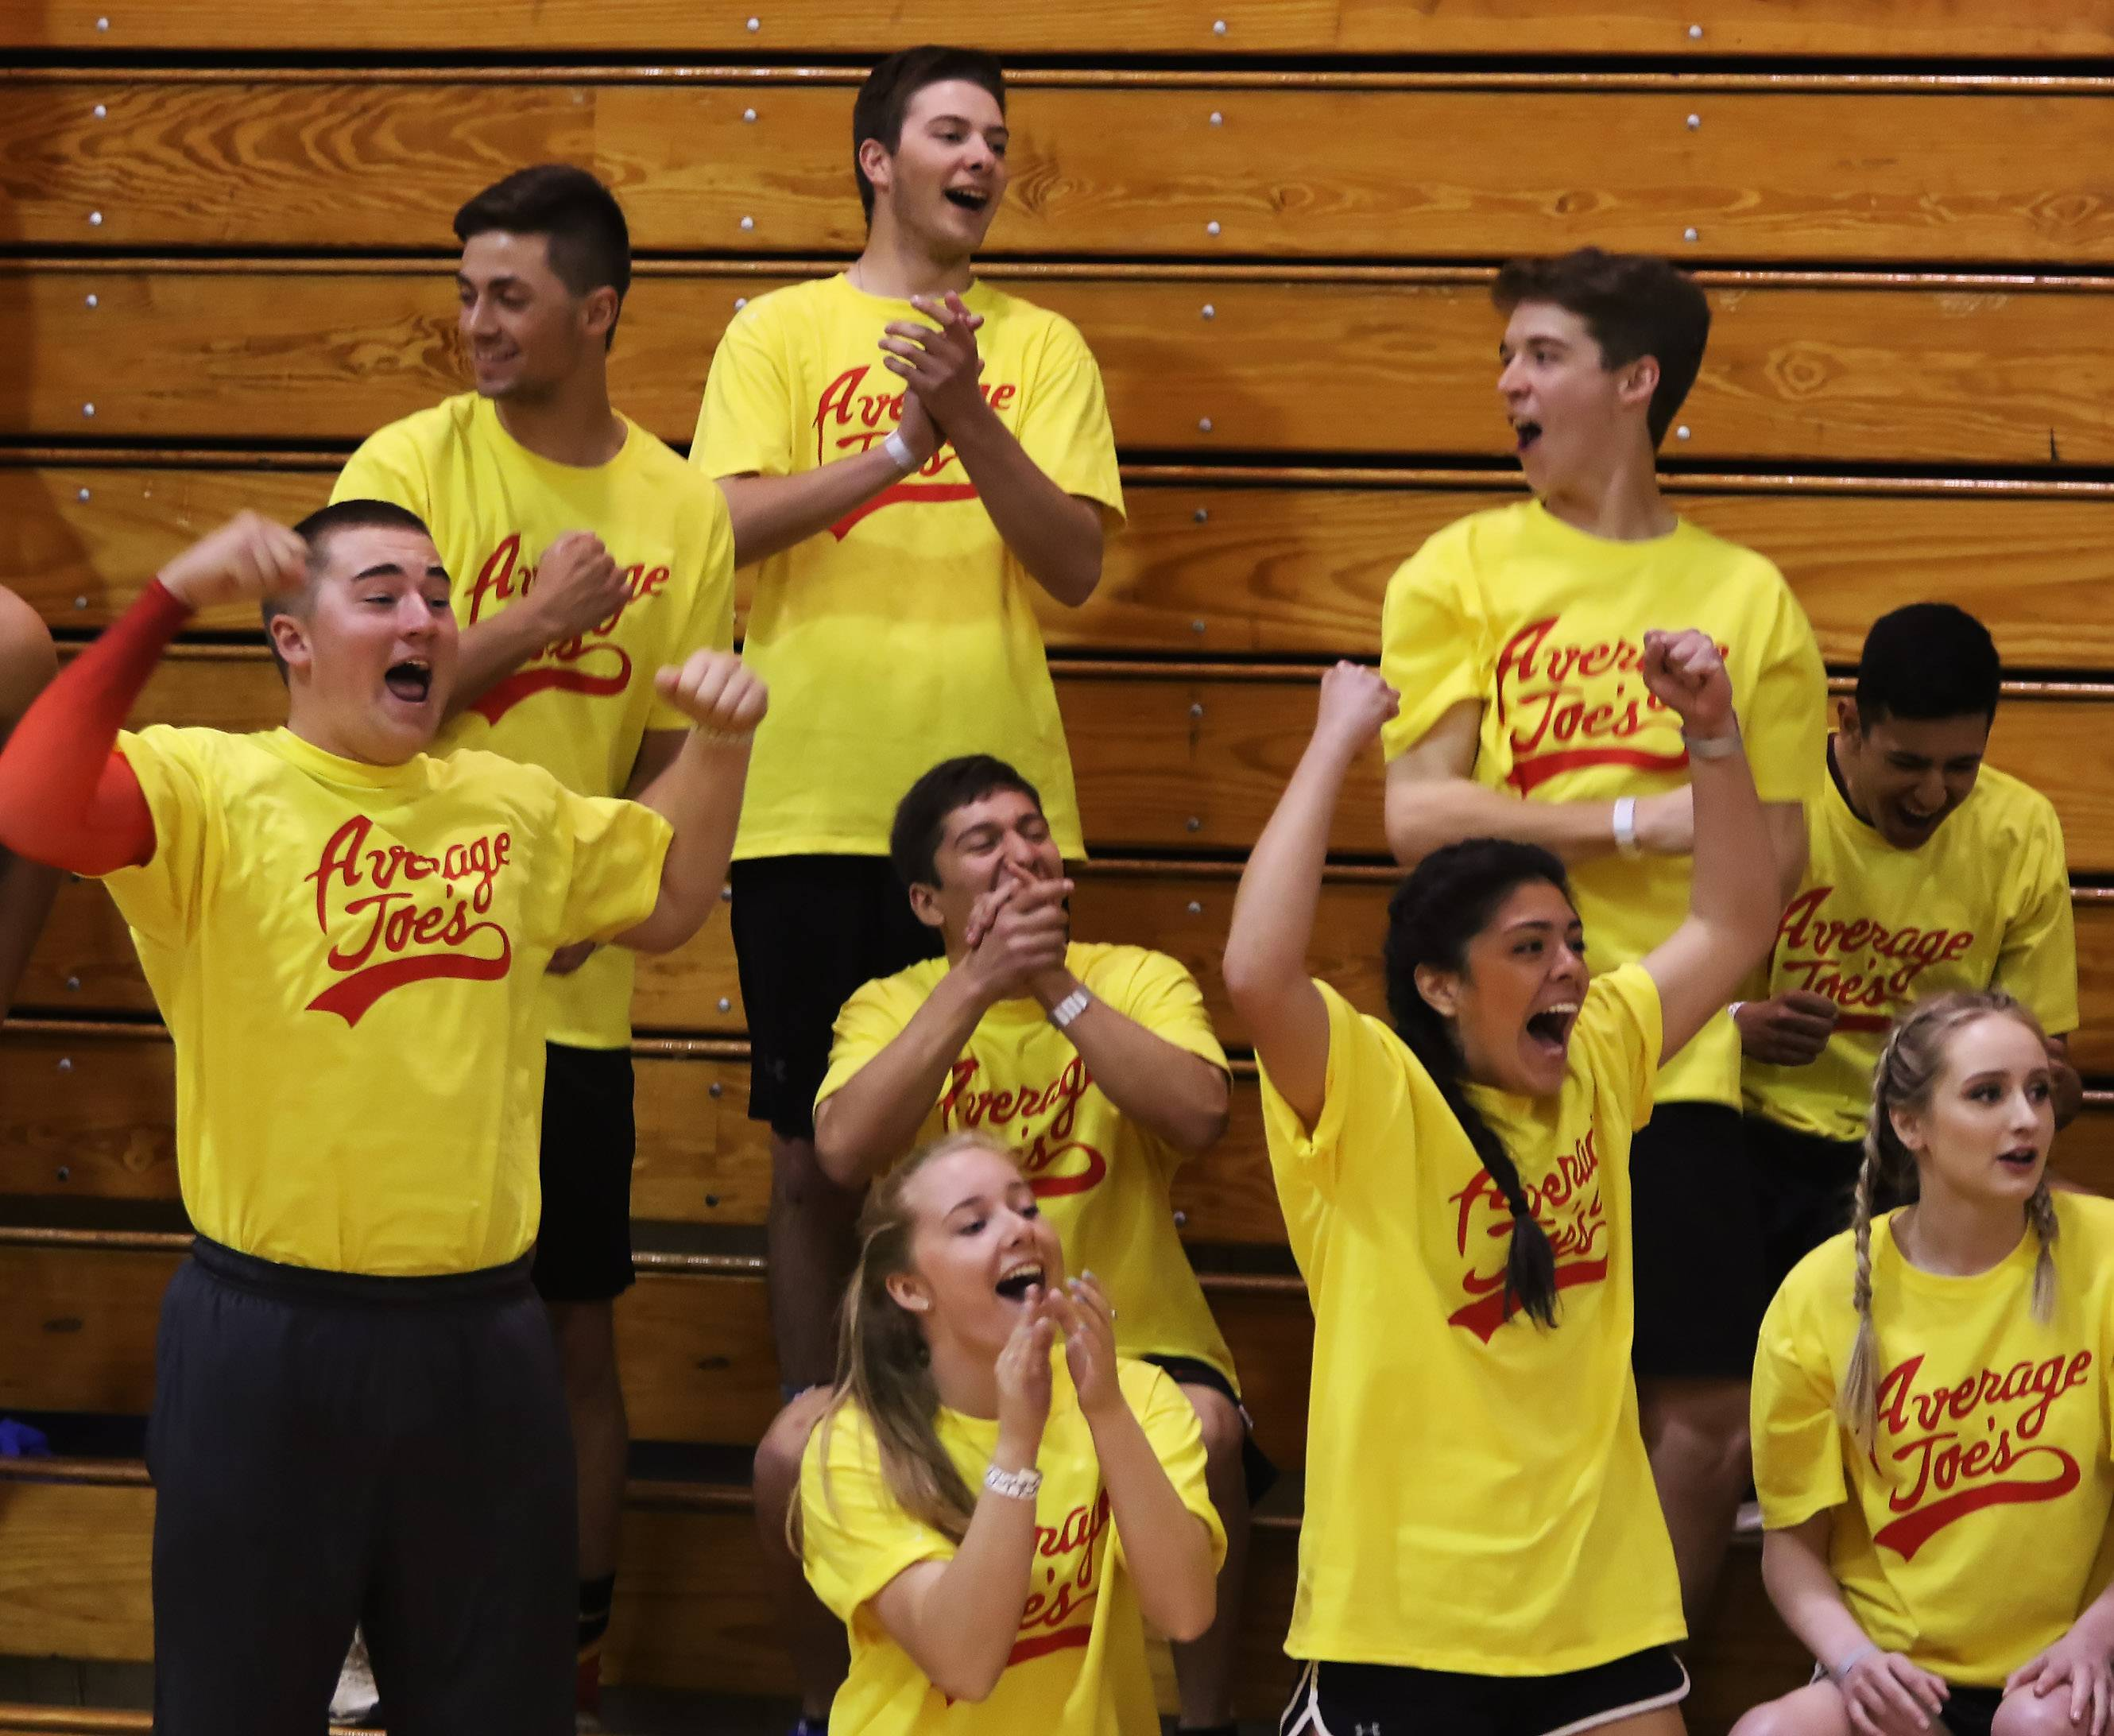 Gilbert R. Boucher II/gboucher@dailyherald.comThe Average Joe's team celebrates as their teammate sinks a basket during Mustang Olympics on Sunday at Mundelein High School. Teams competed in games like dodgeball, hamster ball relay and knock-out.